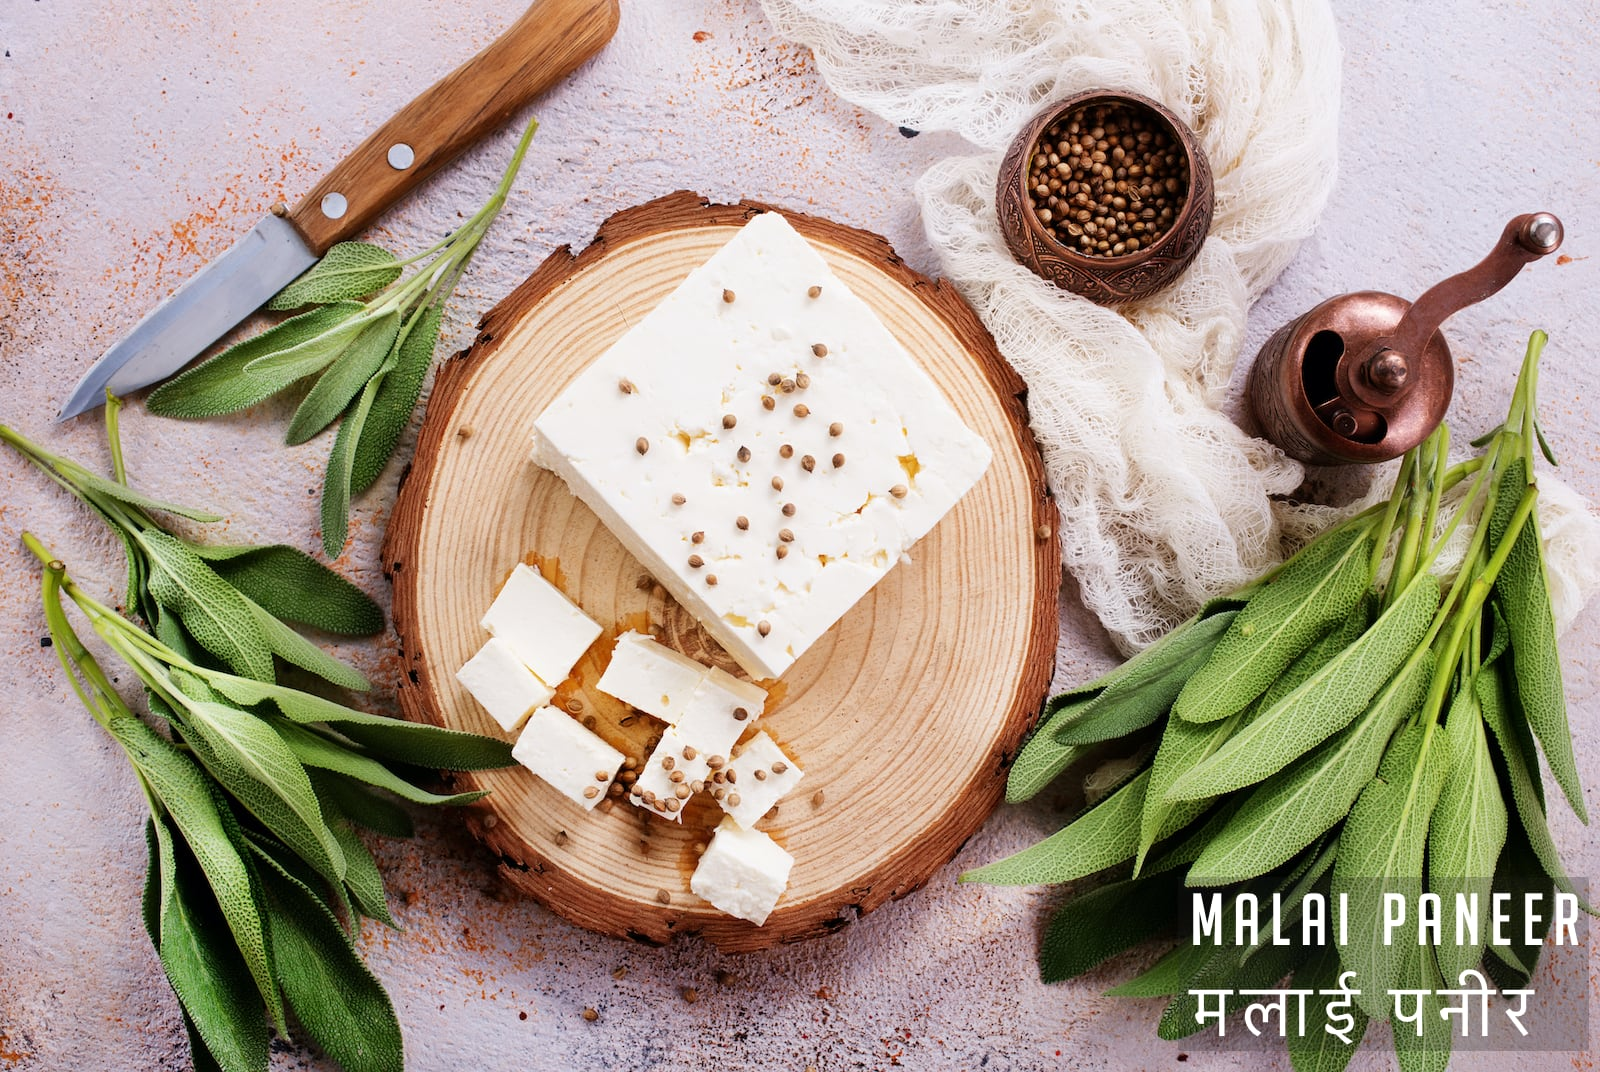 How to make Malai Paneer at home in 10 mins